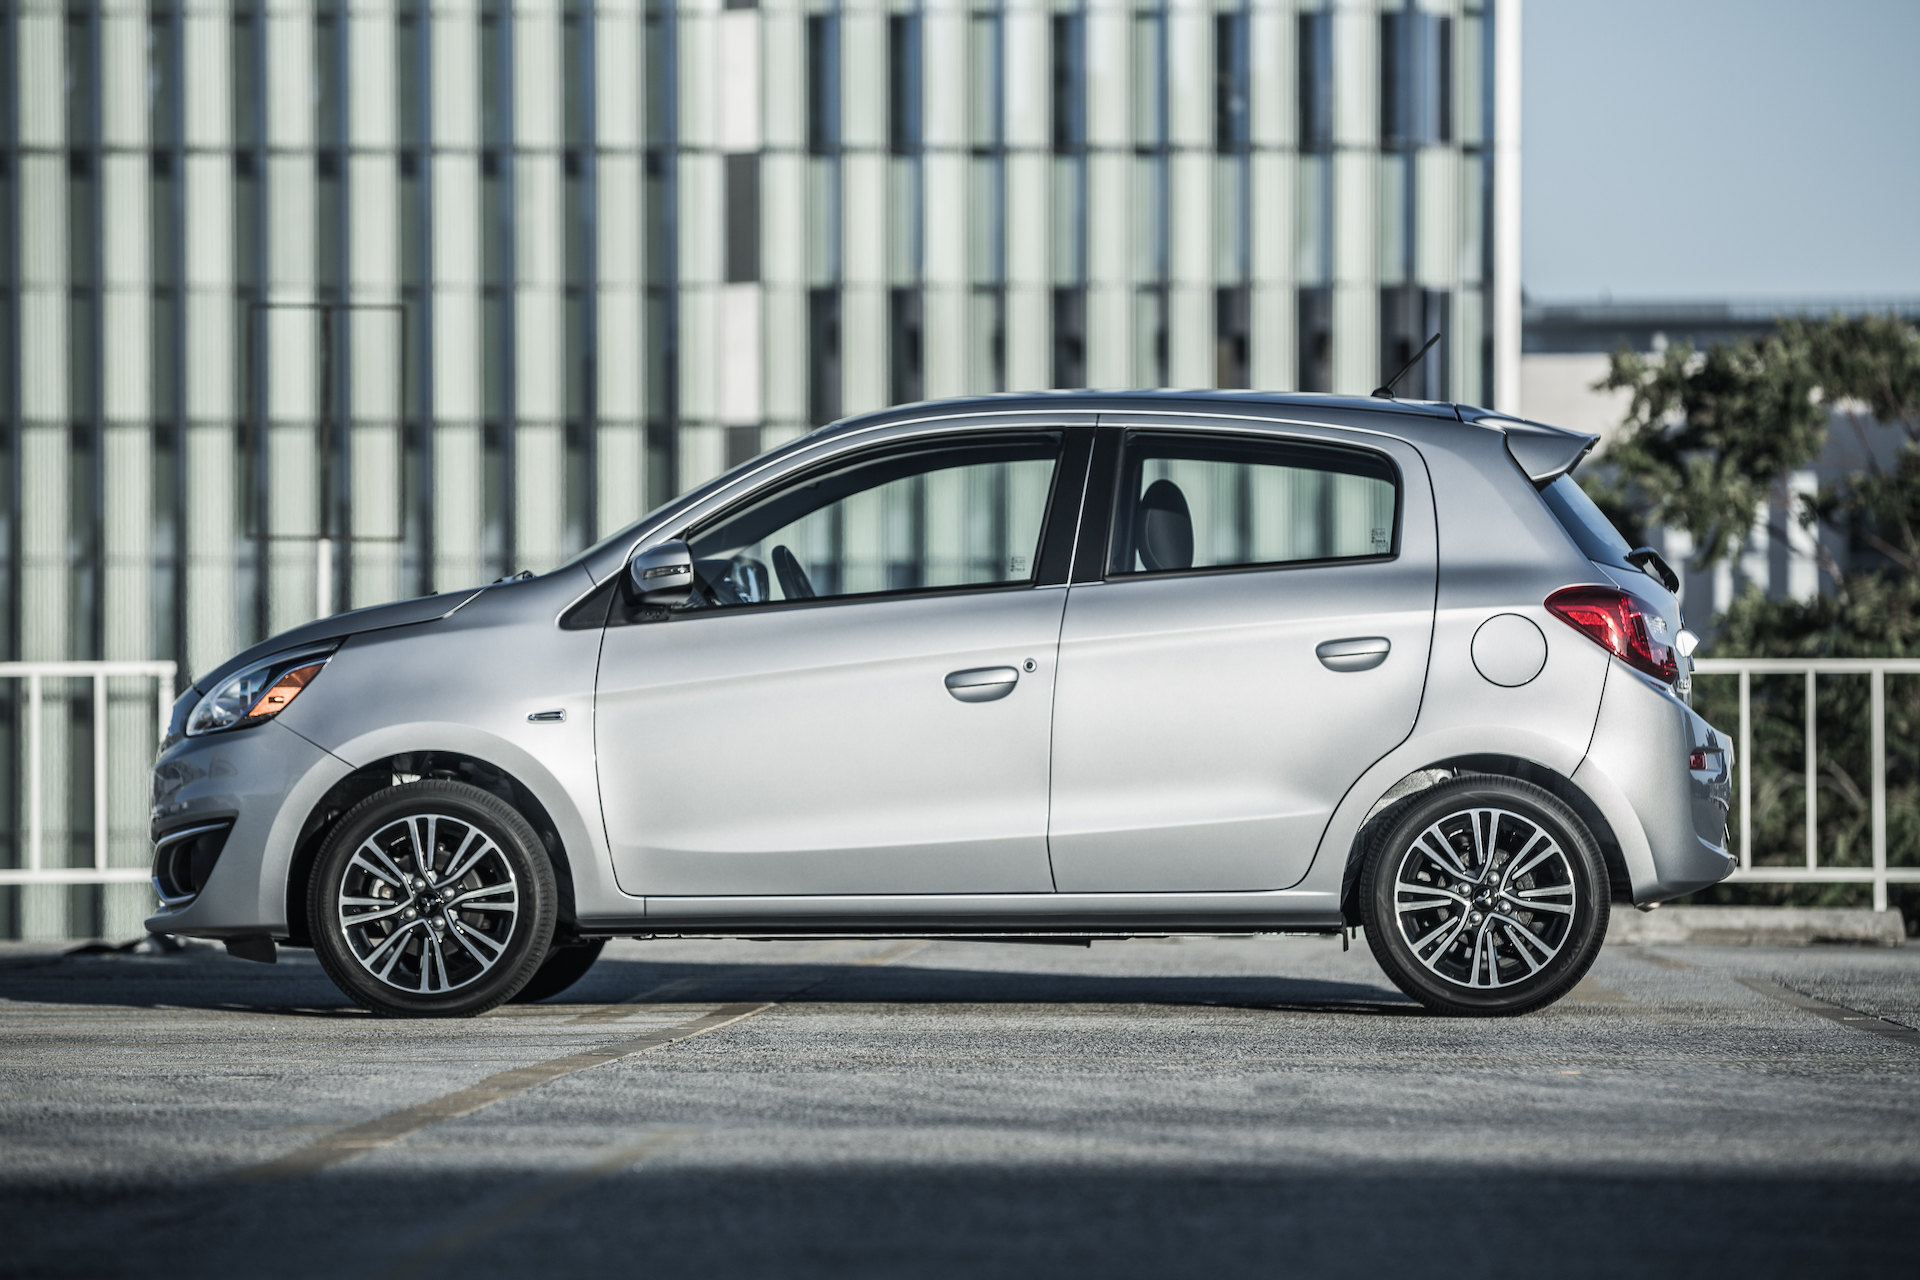 2020 Mitsubishi Mirage Review.2020 Mitsubishi Mirage Review Ratings Specs Prices And